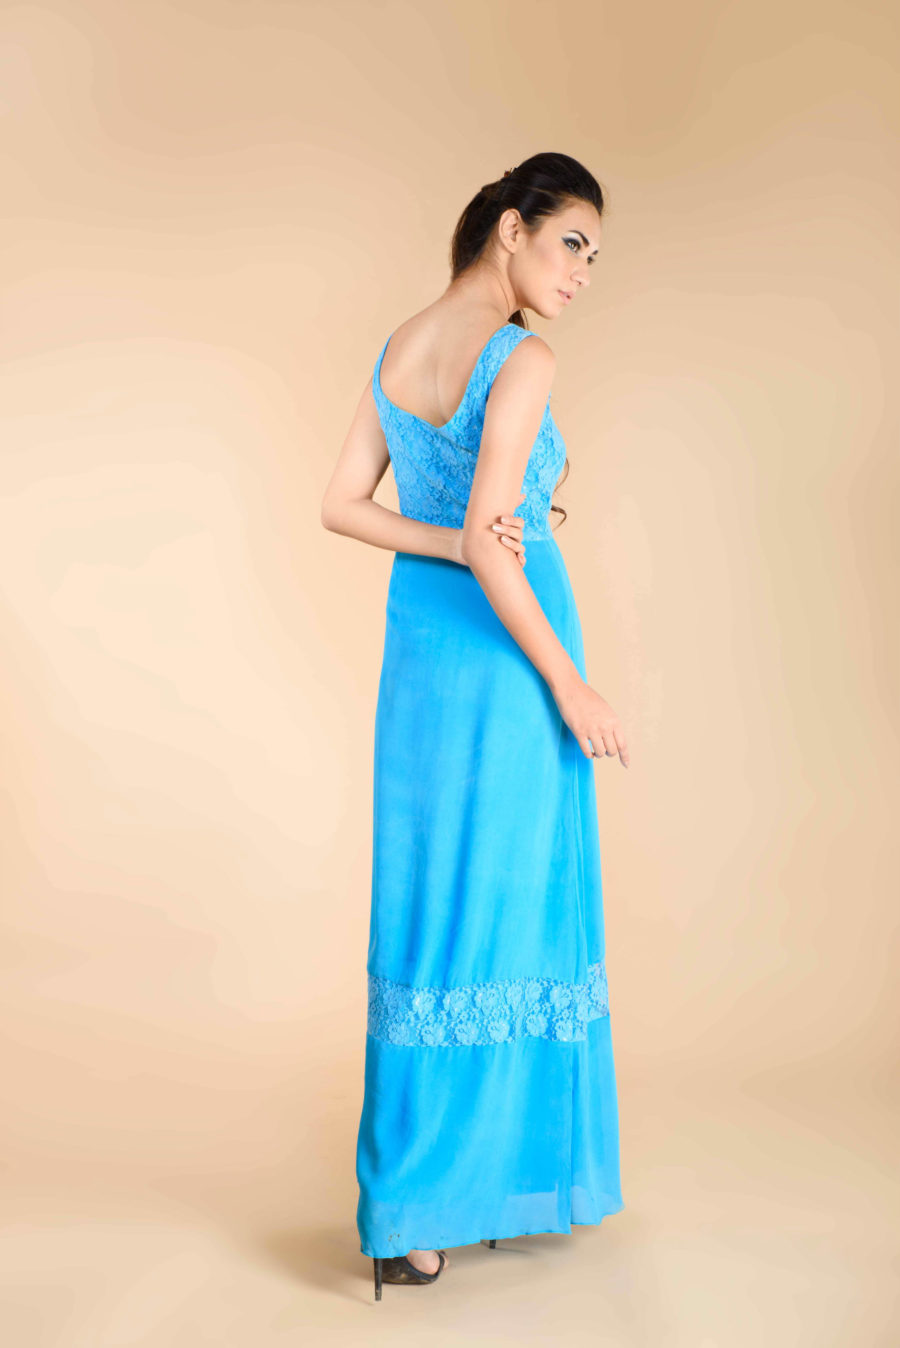 Sky Blue gown with lace